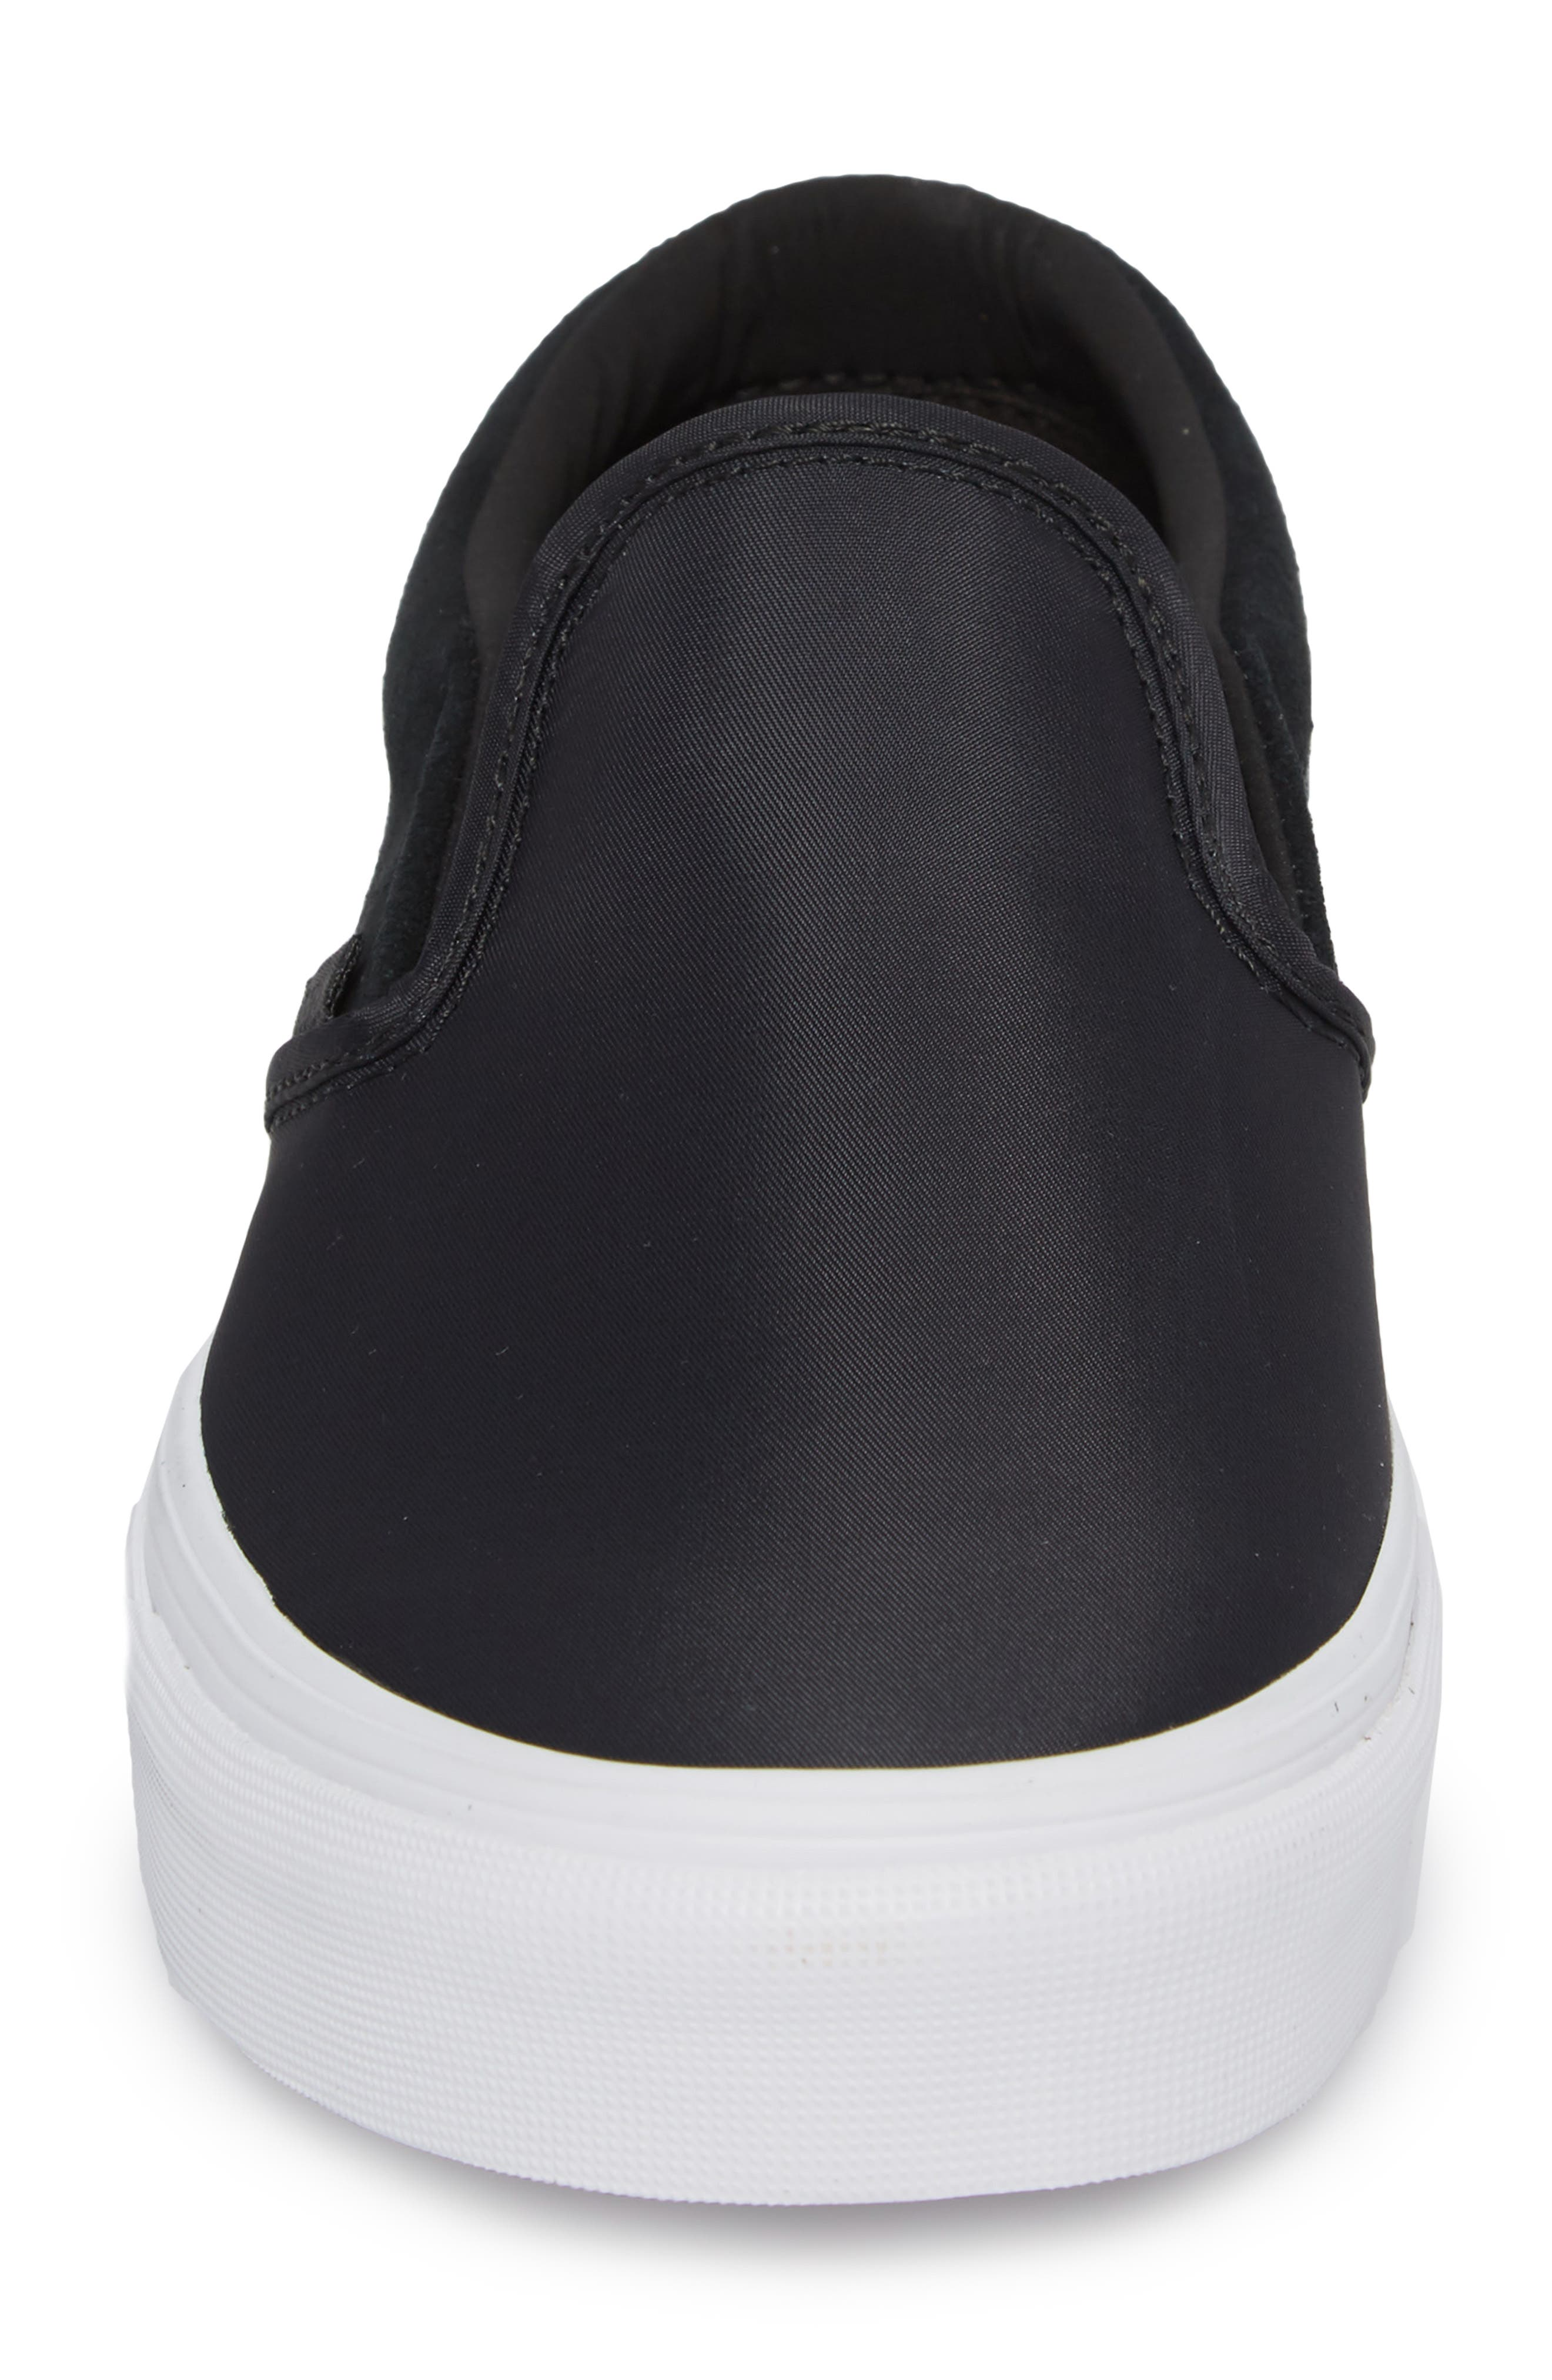 Surplus Nylon Slip-On Sneaker,                             Alternate thumbnail 4, color,                             001